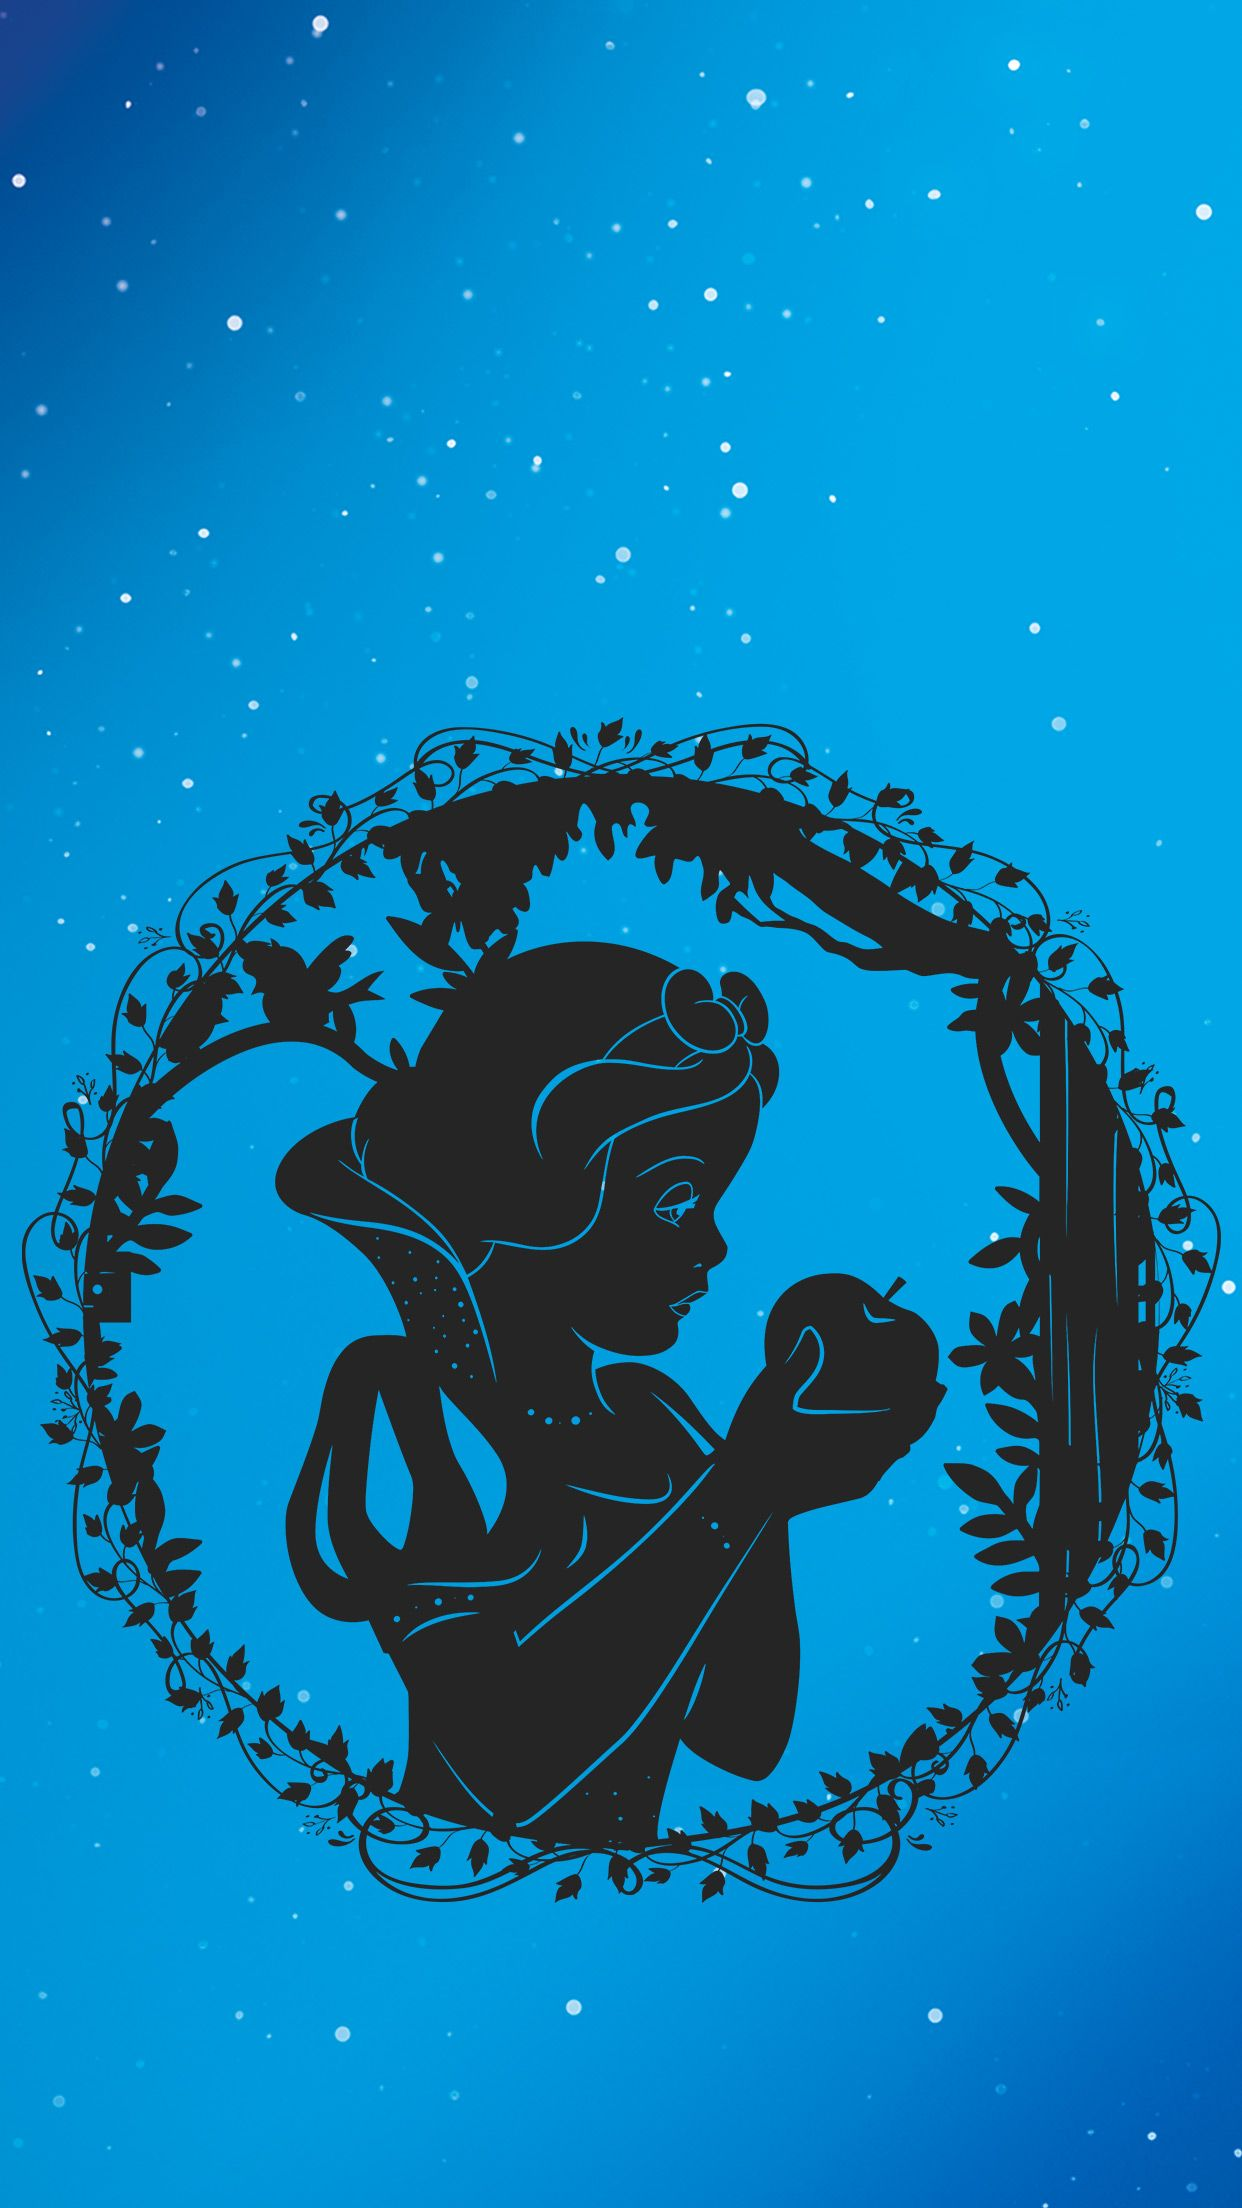 These PapercutInspired Disney Princess Phone Wallpapers